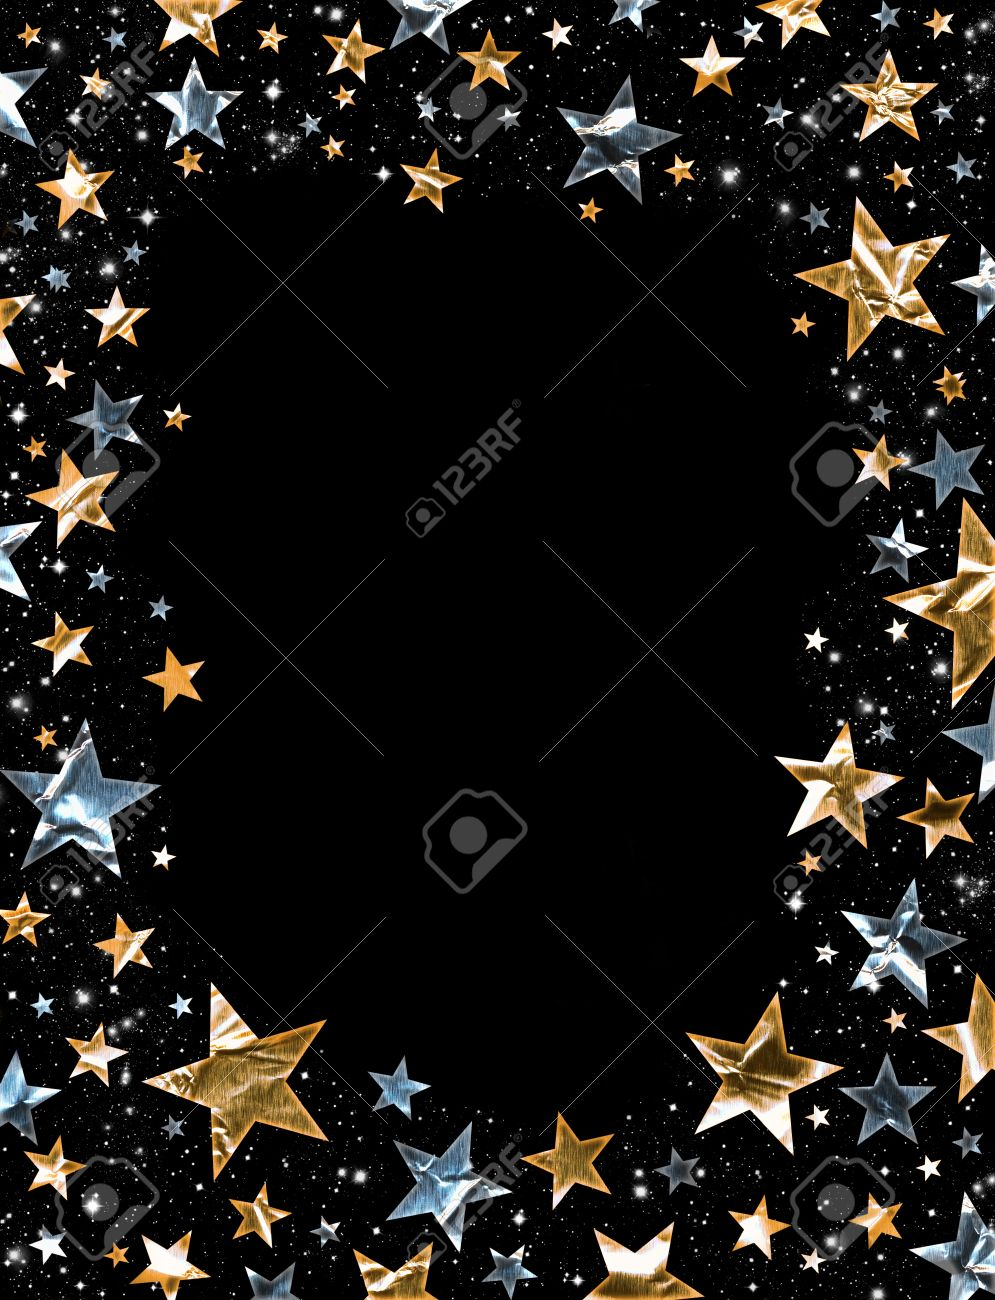 Gold and silver stars on a black background Stock Photo - 10422598